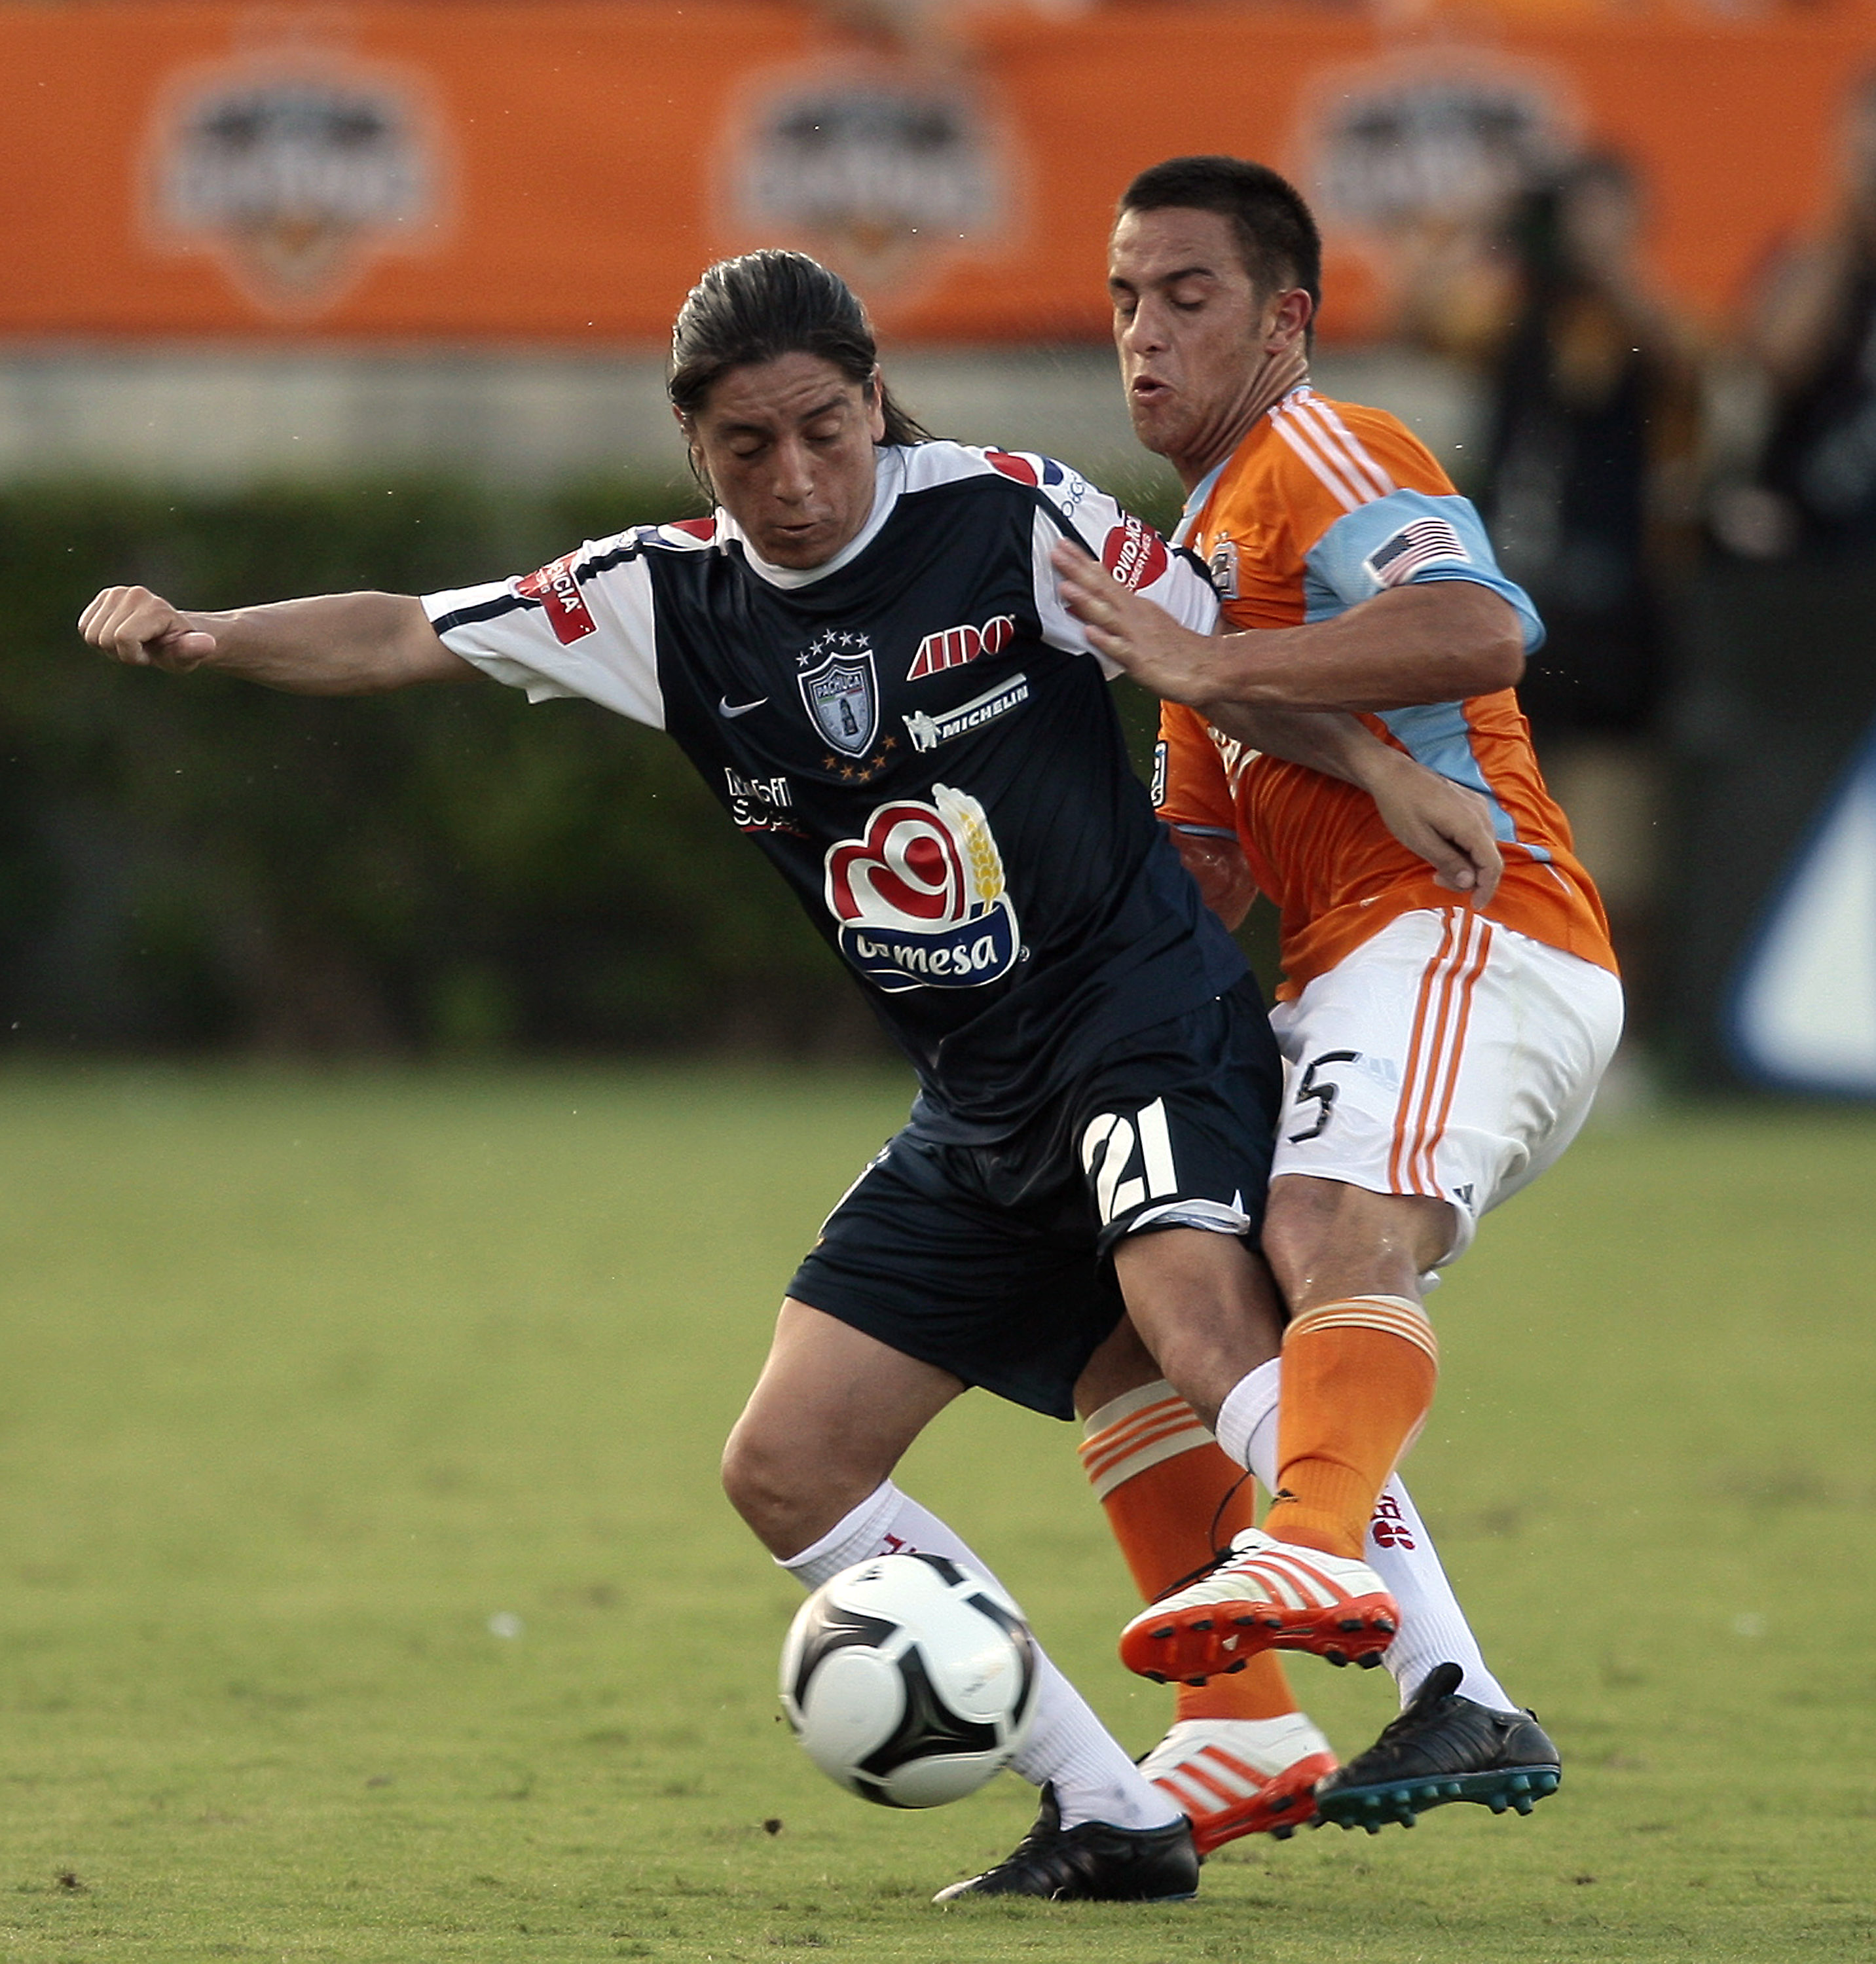 HOUSTON - JULY 15:  Damian Manso #21 of Pachuca and Danny Cruz #5 of the Houston Dynamo fight for the ball during  a SuperLiga match at Robertson Stadium on July 15, 2010 in Houston, Texas.  (Photo by Bob Levey/Getty Images)